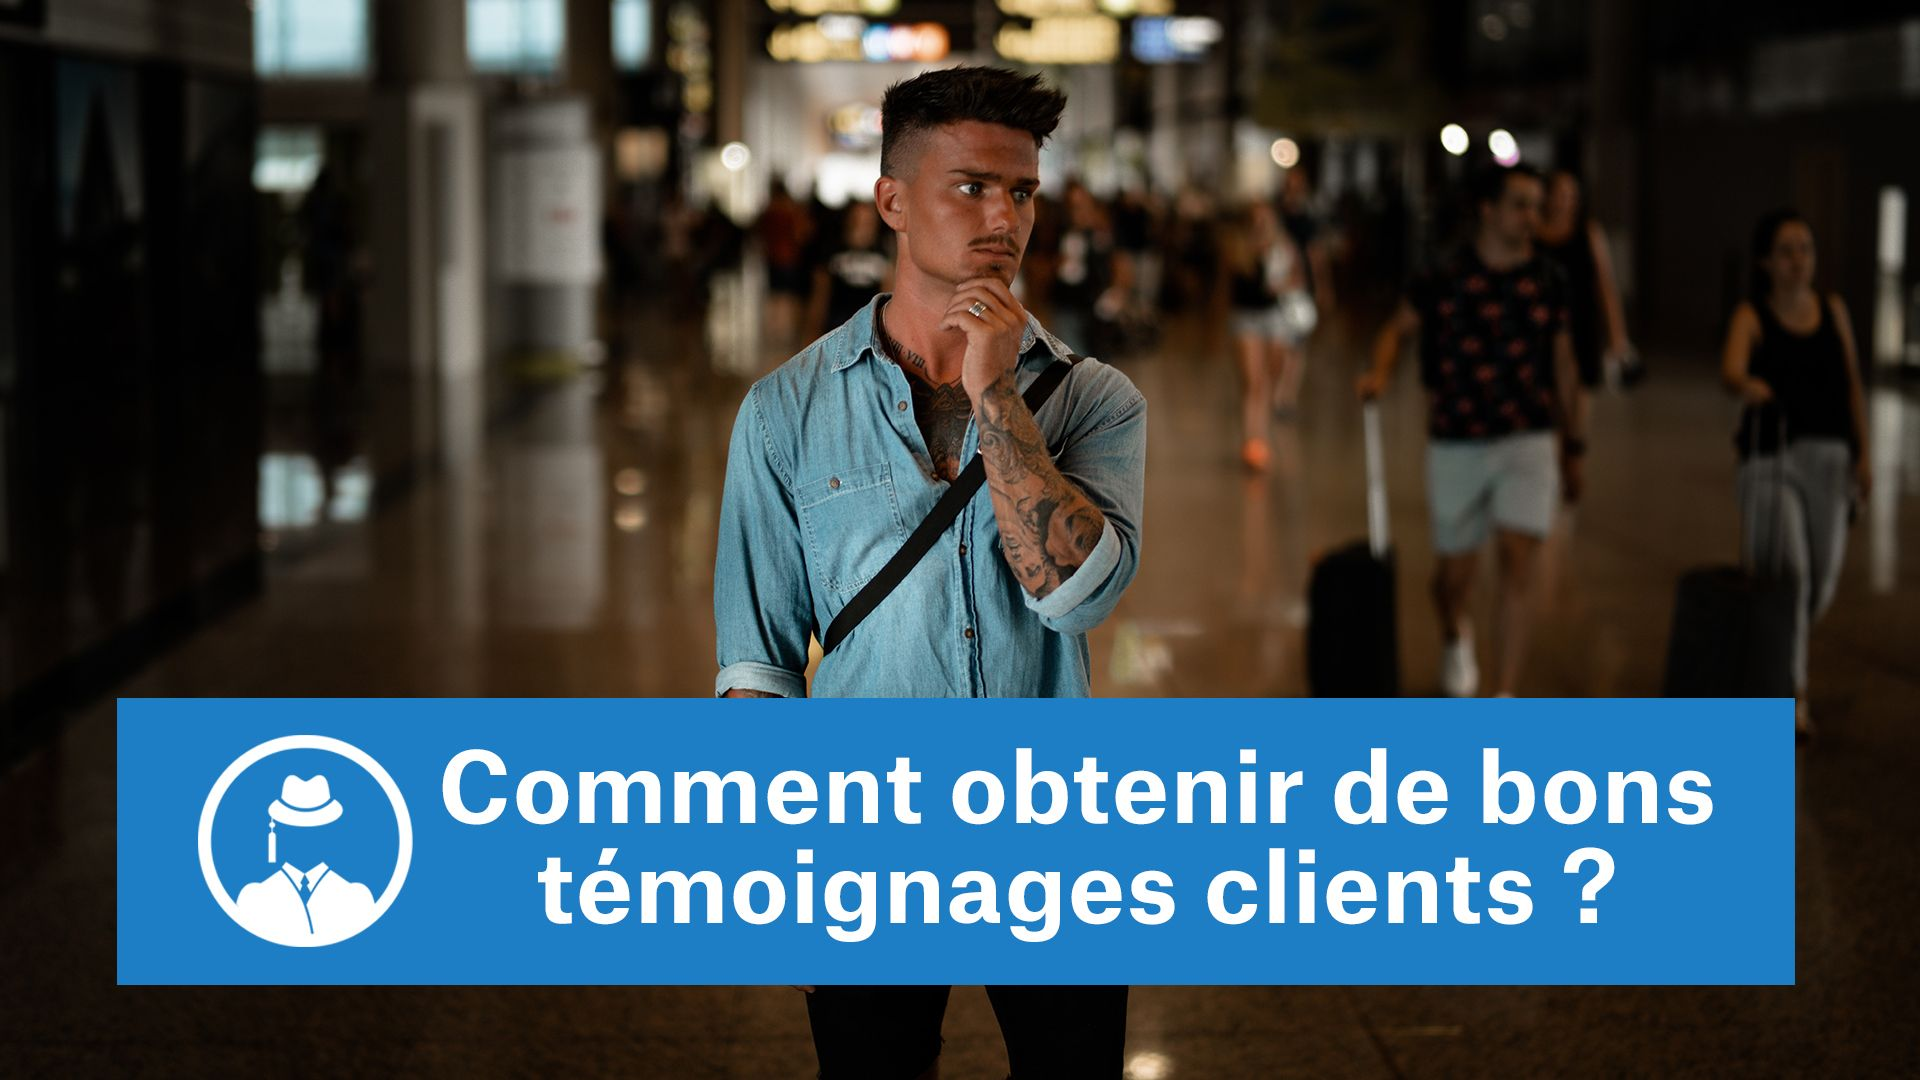 Comment obtenir de bons témoignages clients ? Comment obtenir de bons témoignages clients ? #GrowthHacking #WebMarketing #FormationGrowthHacking #CentreDeFormationFrance #TunnelAARRR #AARRR #SocialMedia #CommunityManagement #SEO #MarketingDigital #SiteWeb #testimonials #TemoignagesClients